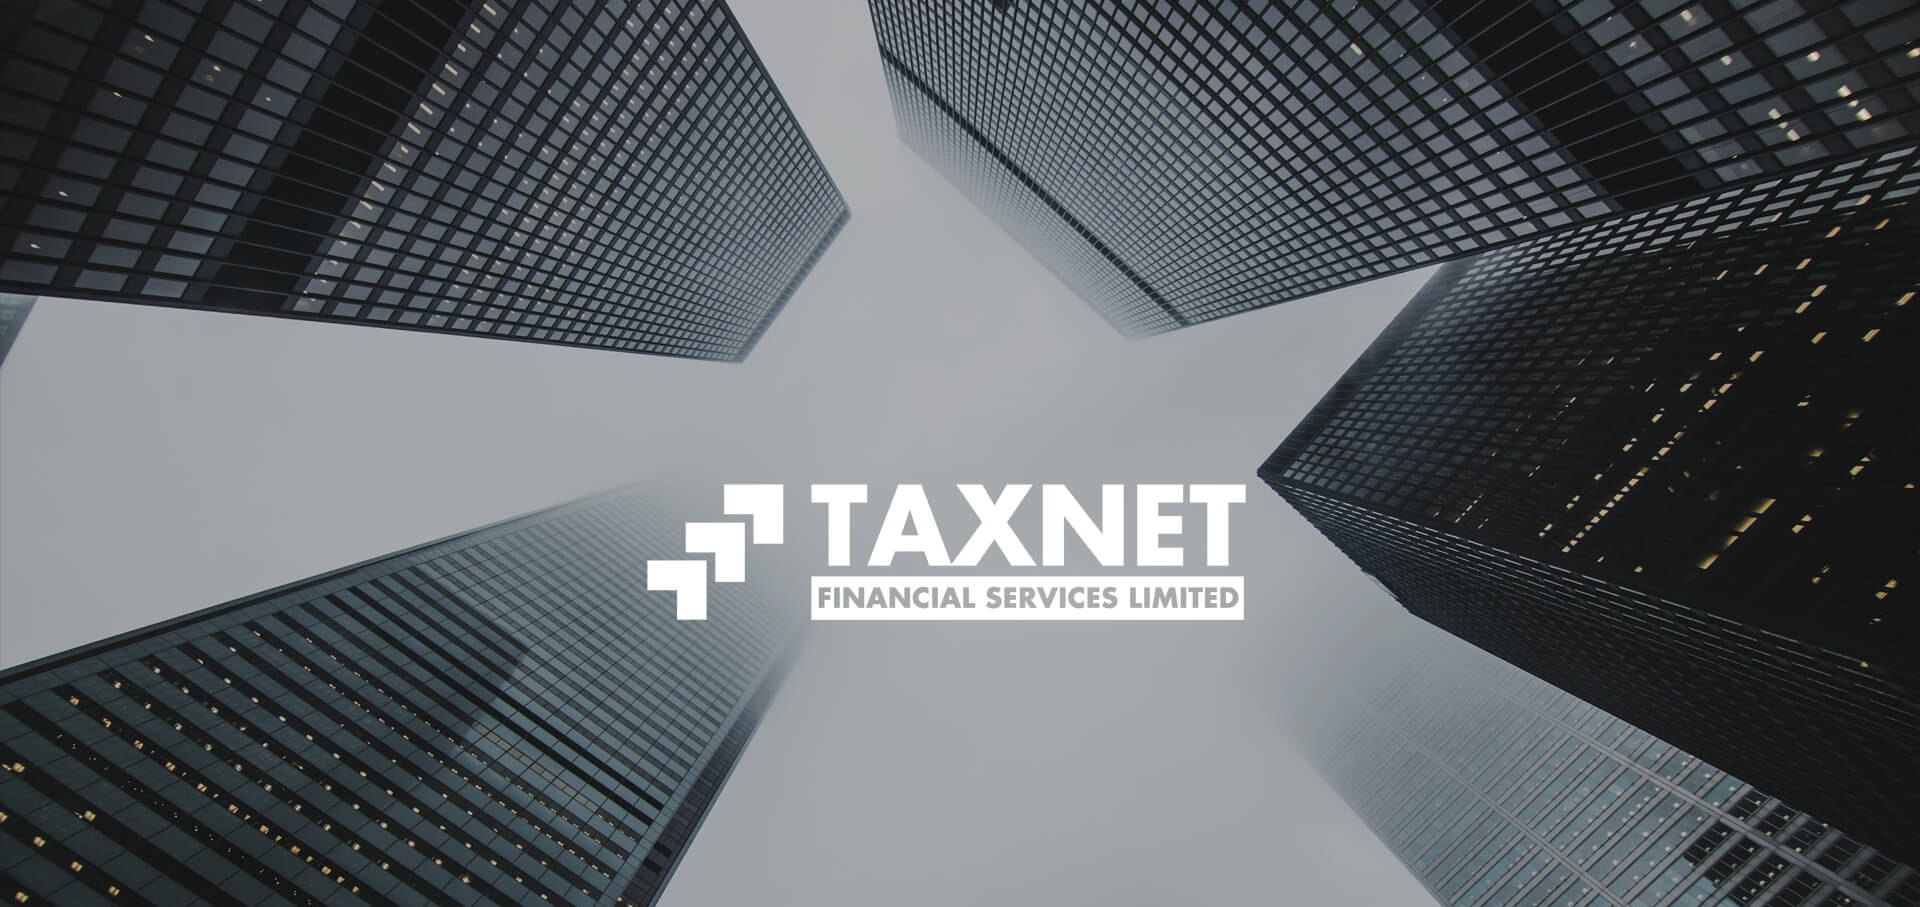 Taxnet Financial services logo banner